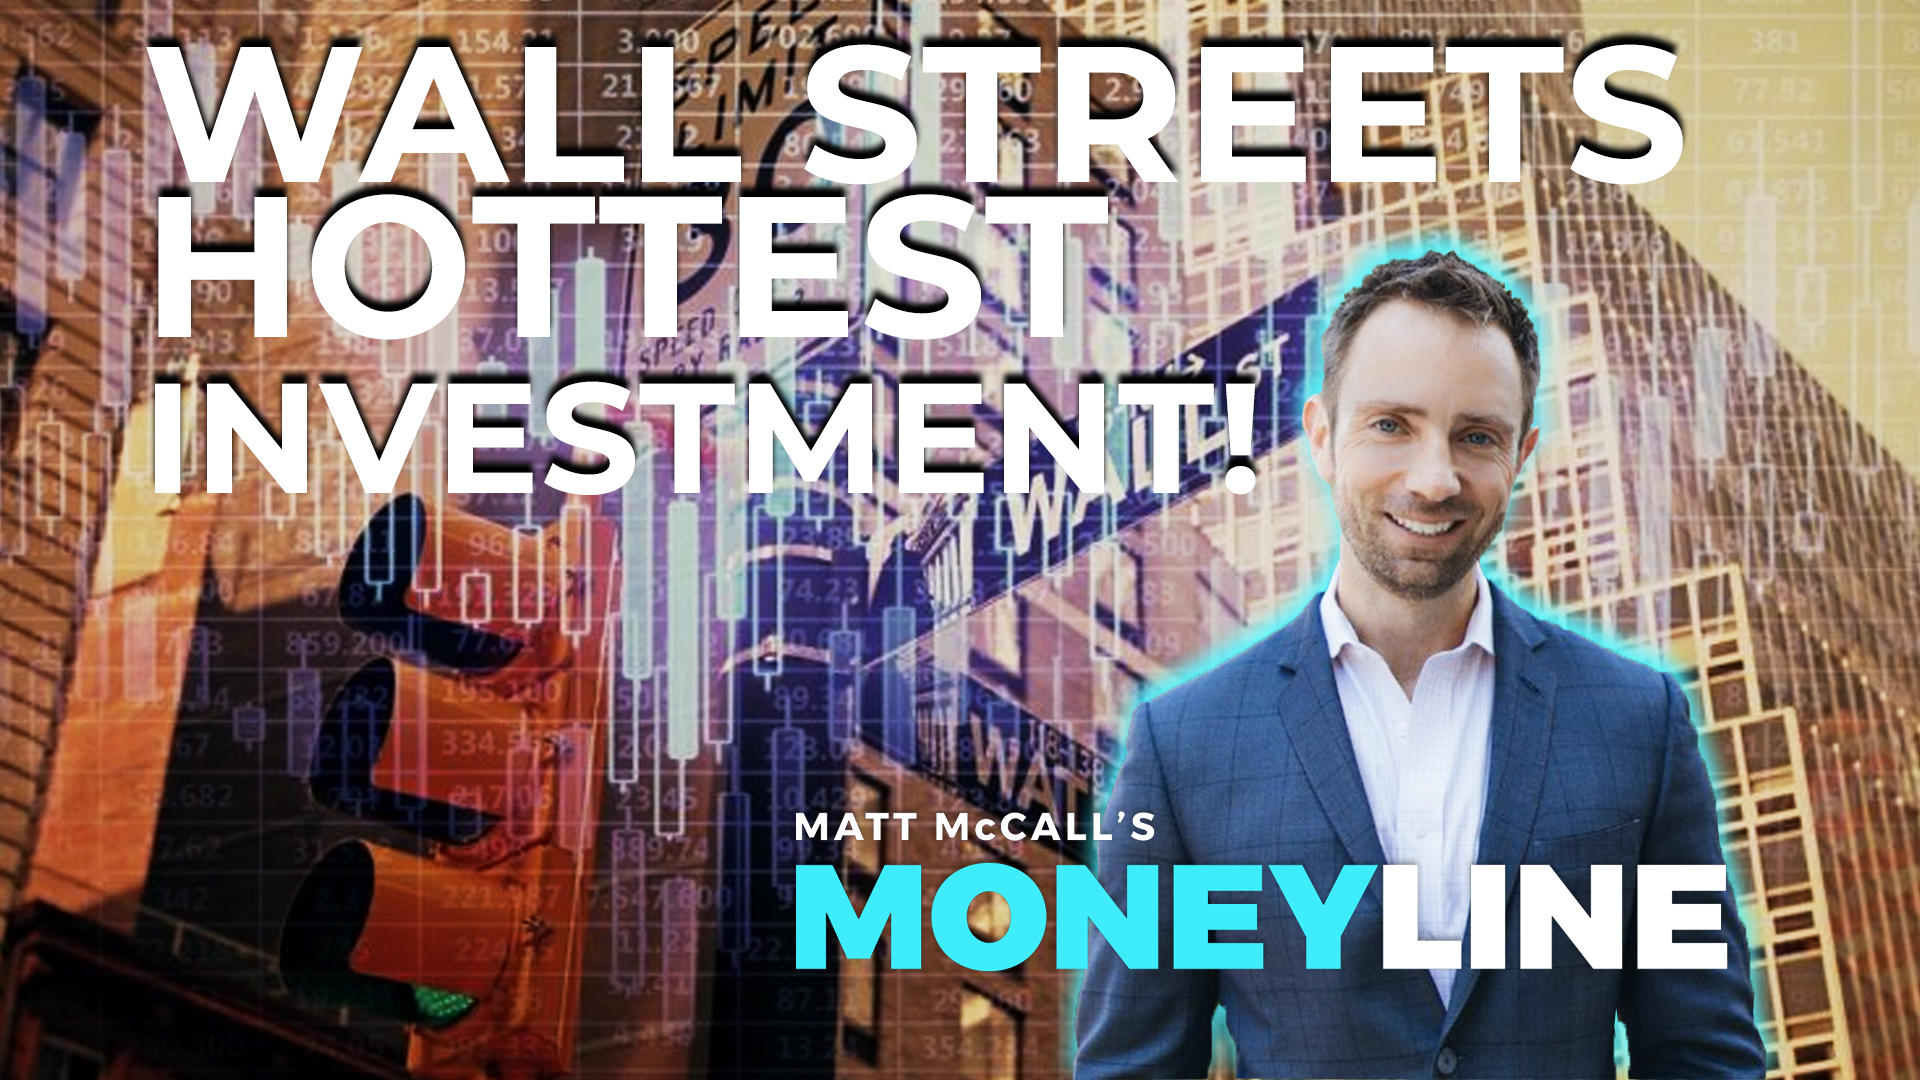 Matt McCall's Moneyline: Wall Street's Hottest Investment!